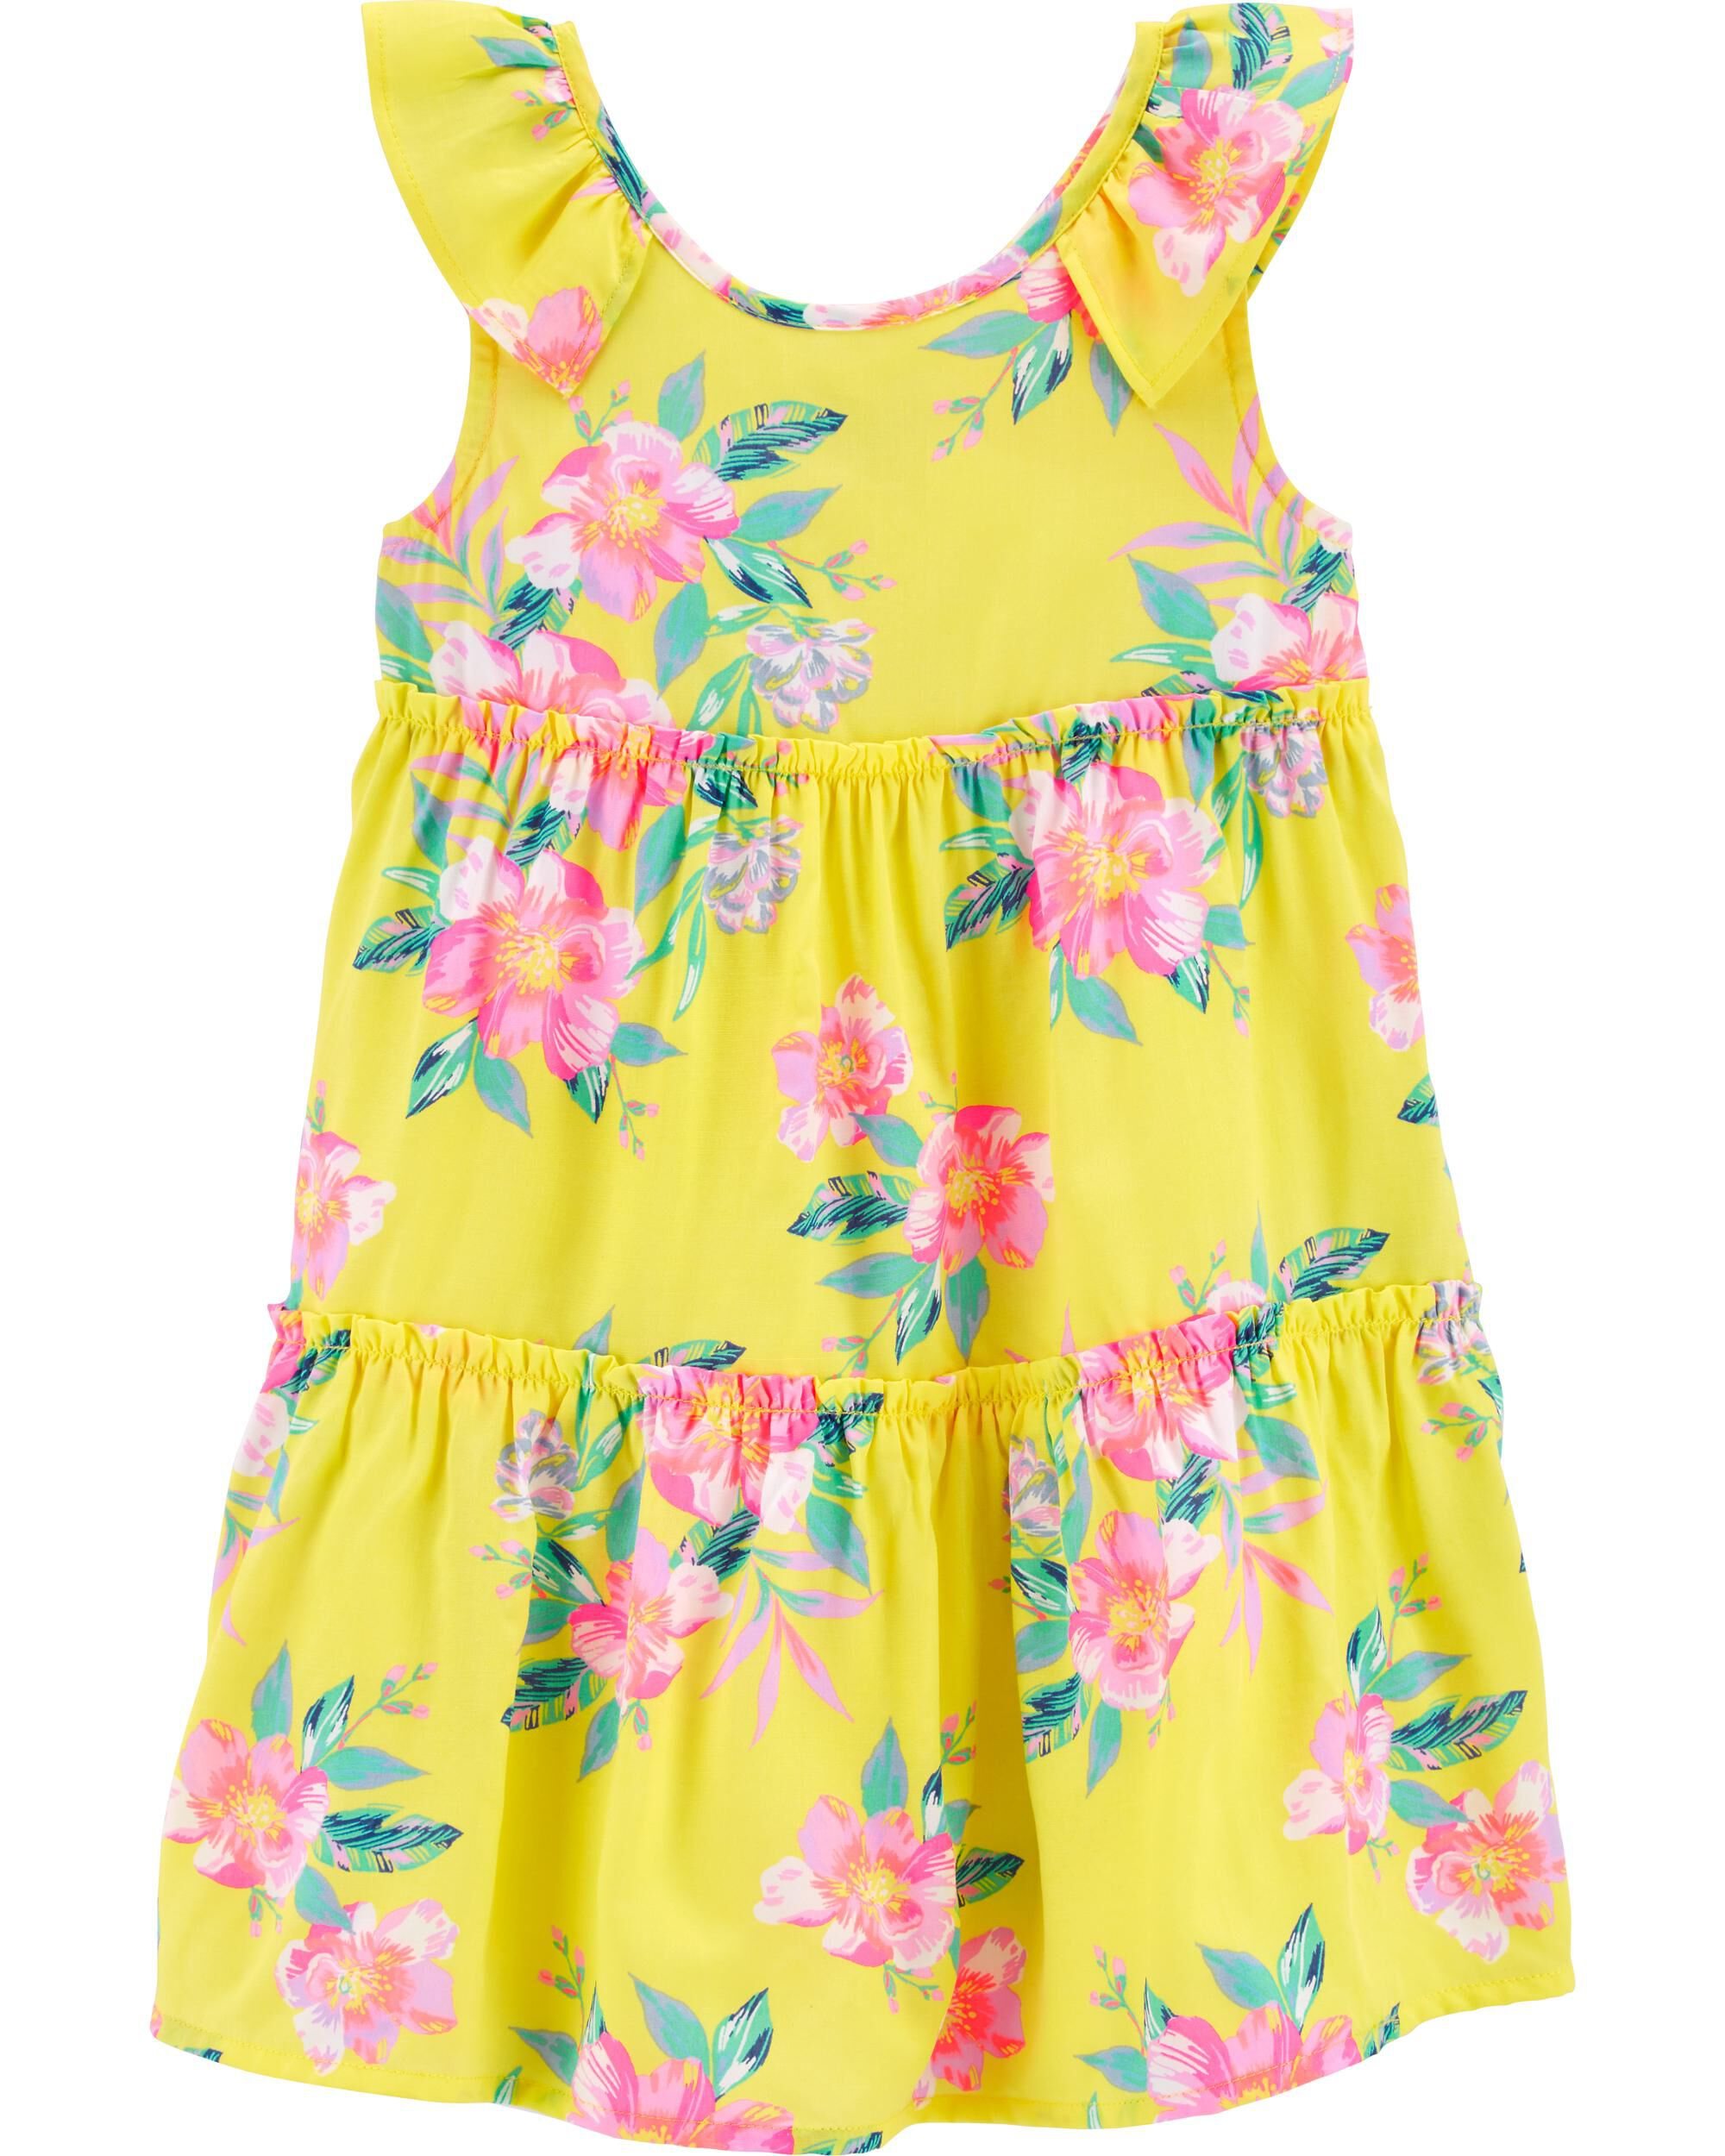 Tropical Floral Ruffle Dress